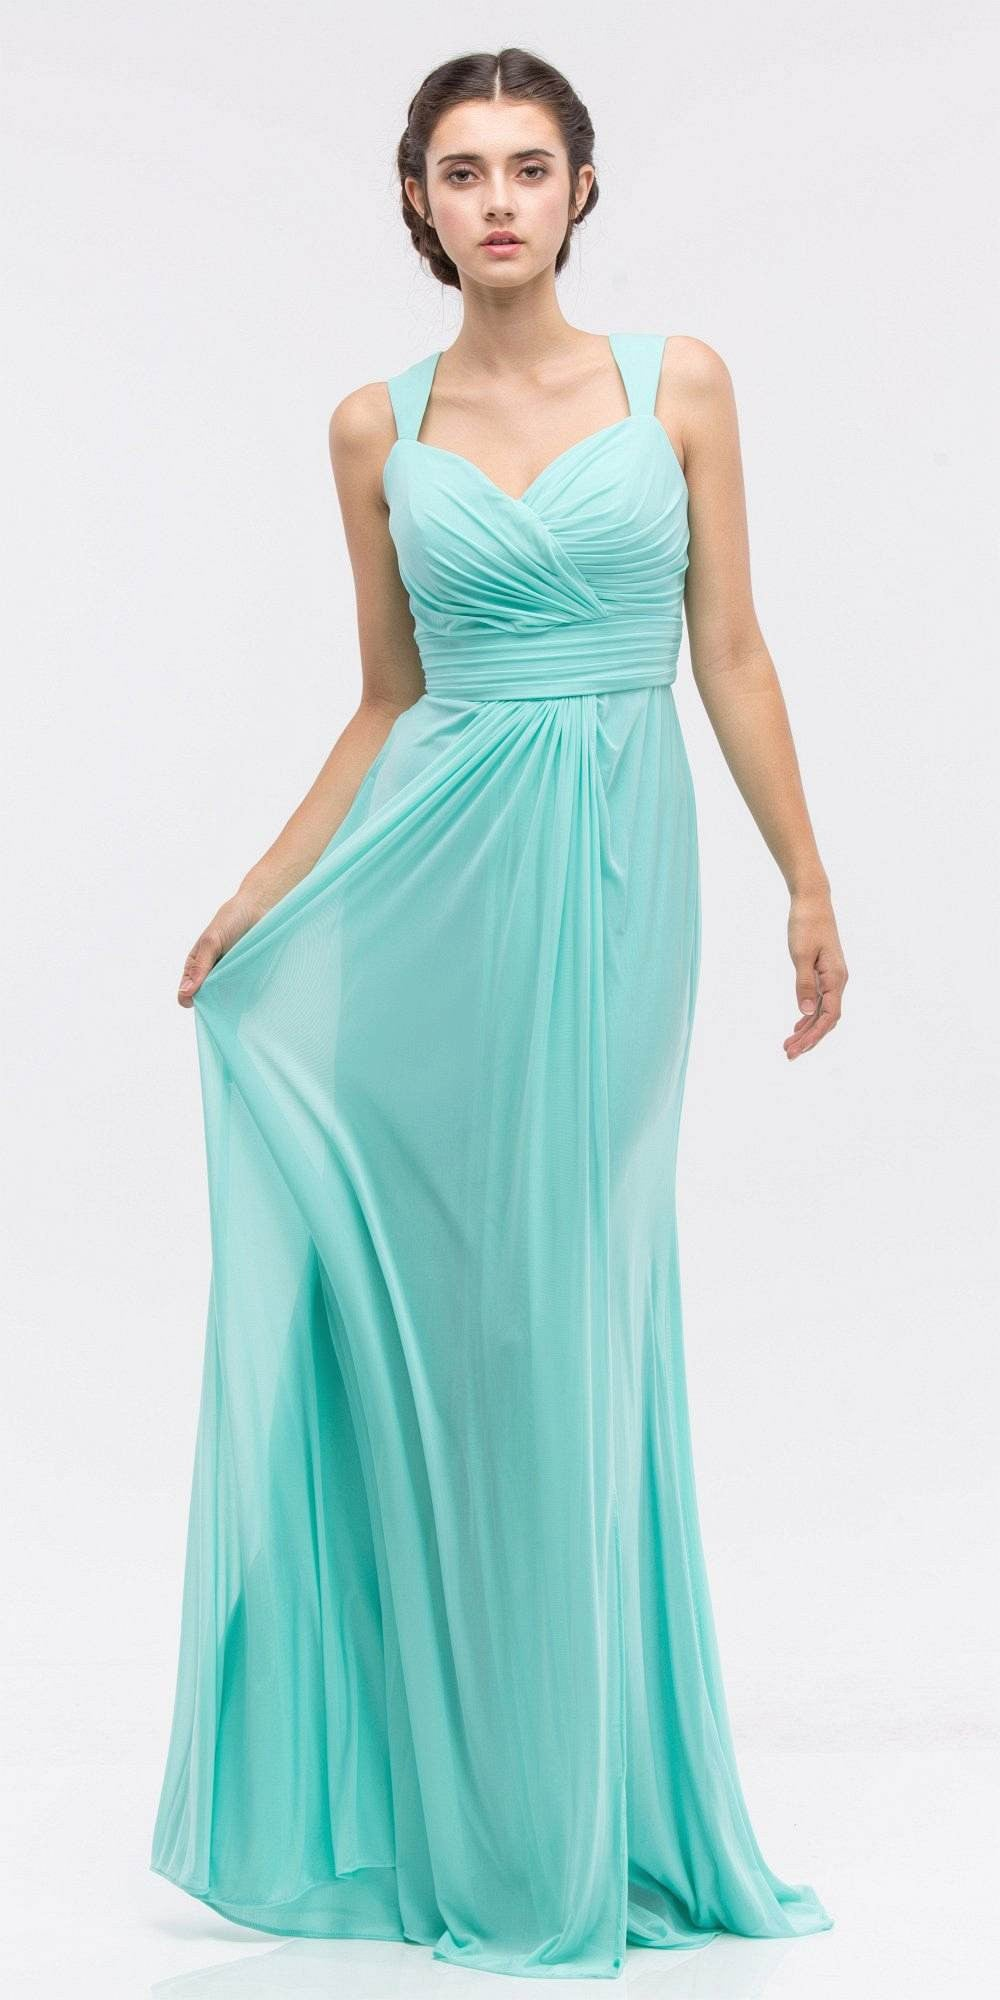 Ruched Sweetheart Neckline Floor Length Bridesmaids Dress Mint